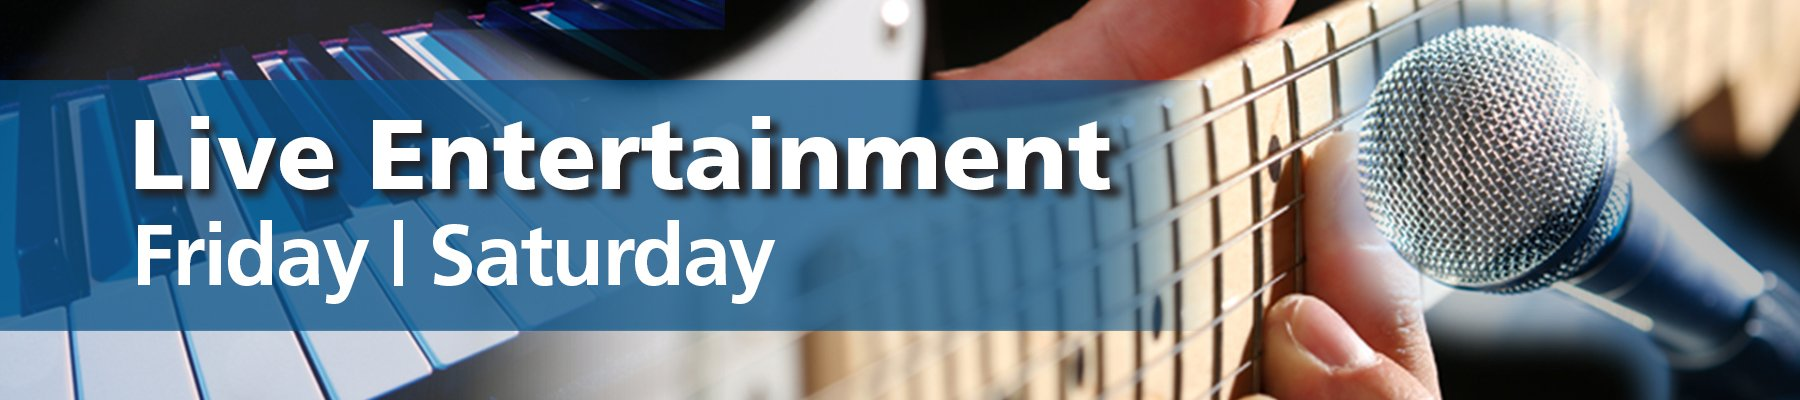 Live Entertainment Fridays & Saturdays at Uncle Ronnie's in Buriville, RI